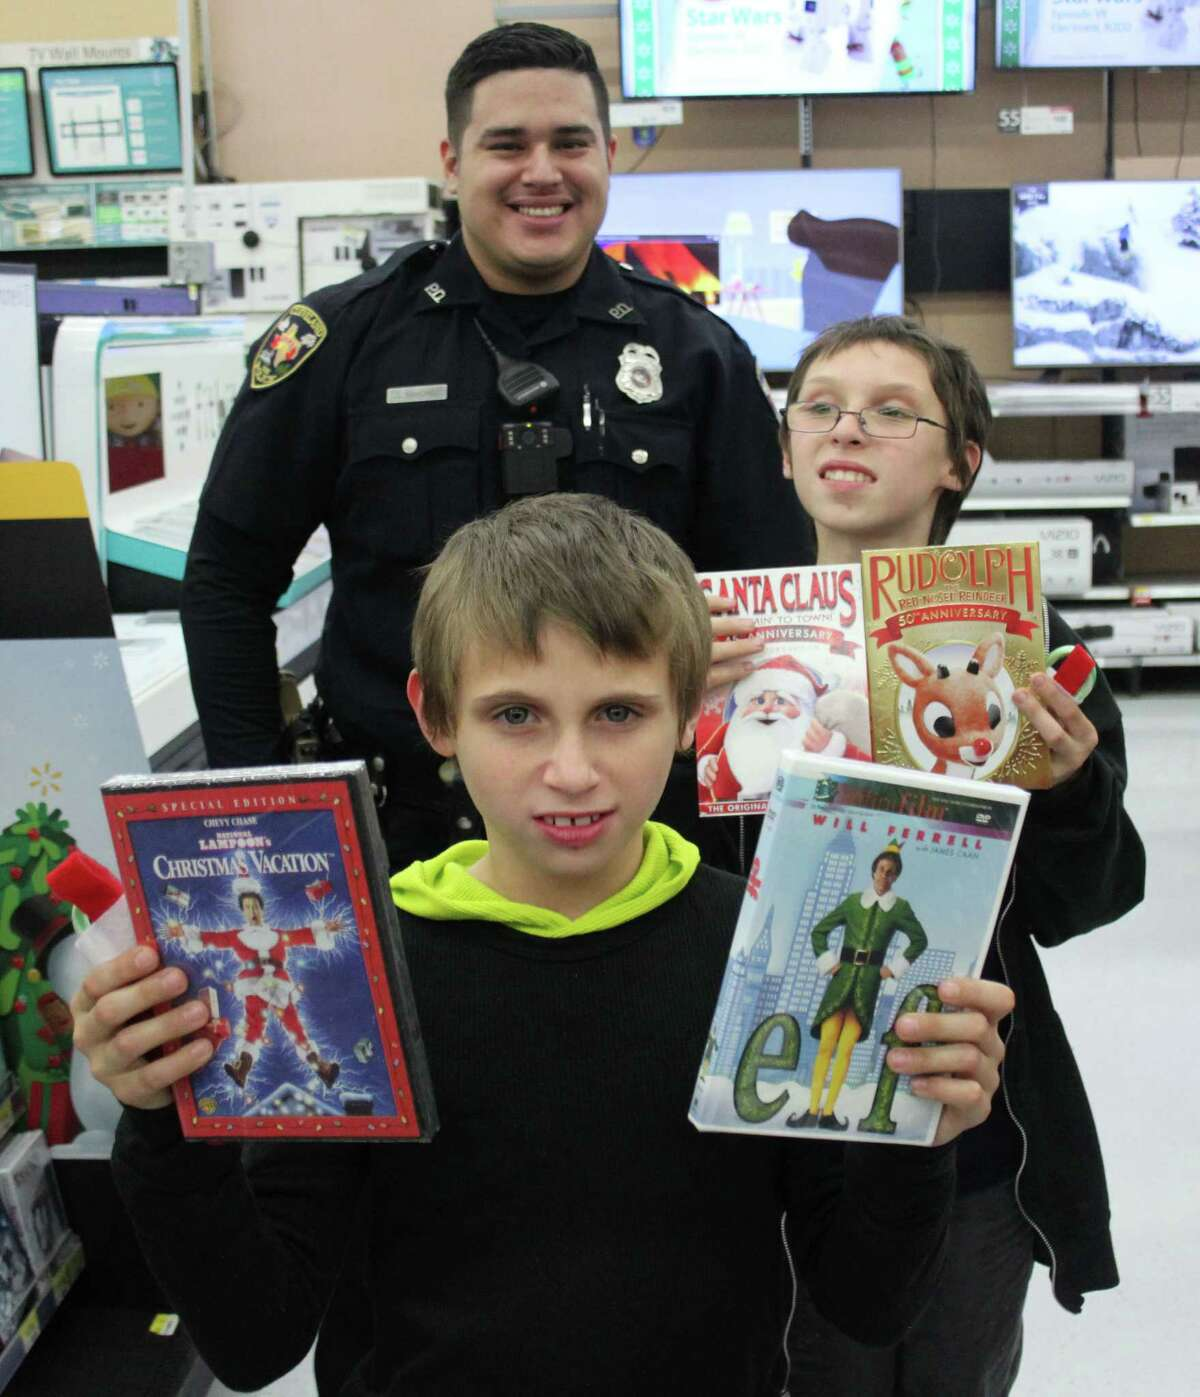 Zachariah DeCuir (front) and his brother John DeCuir (right) show off Christmas movies they plan to purchase their gift cards. Cleveland Police Department Patrol Officer Oscar Sanchez (back) assisted the two children in picking out movies.